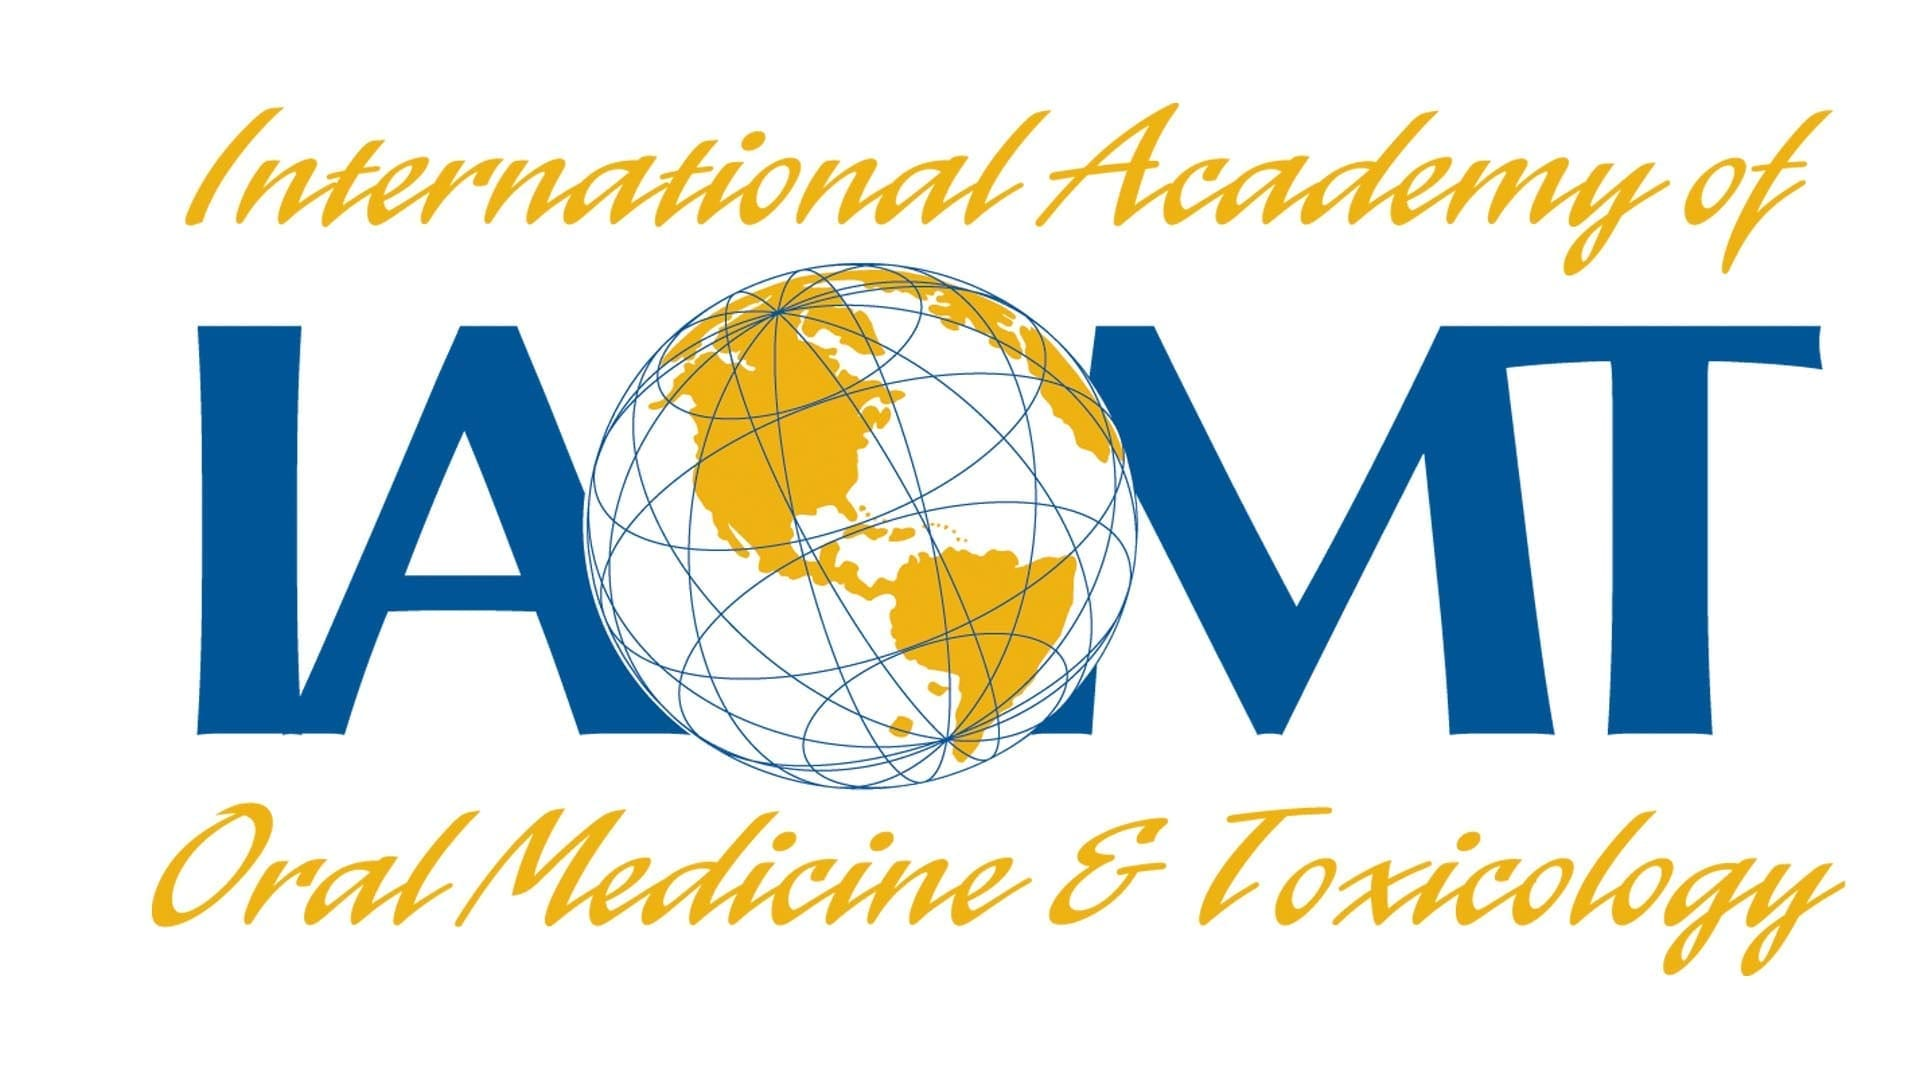 The International Academy of Oral Medicine and Toxicology - IAOMT